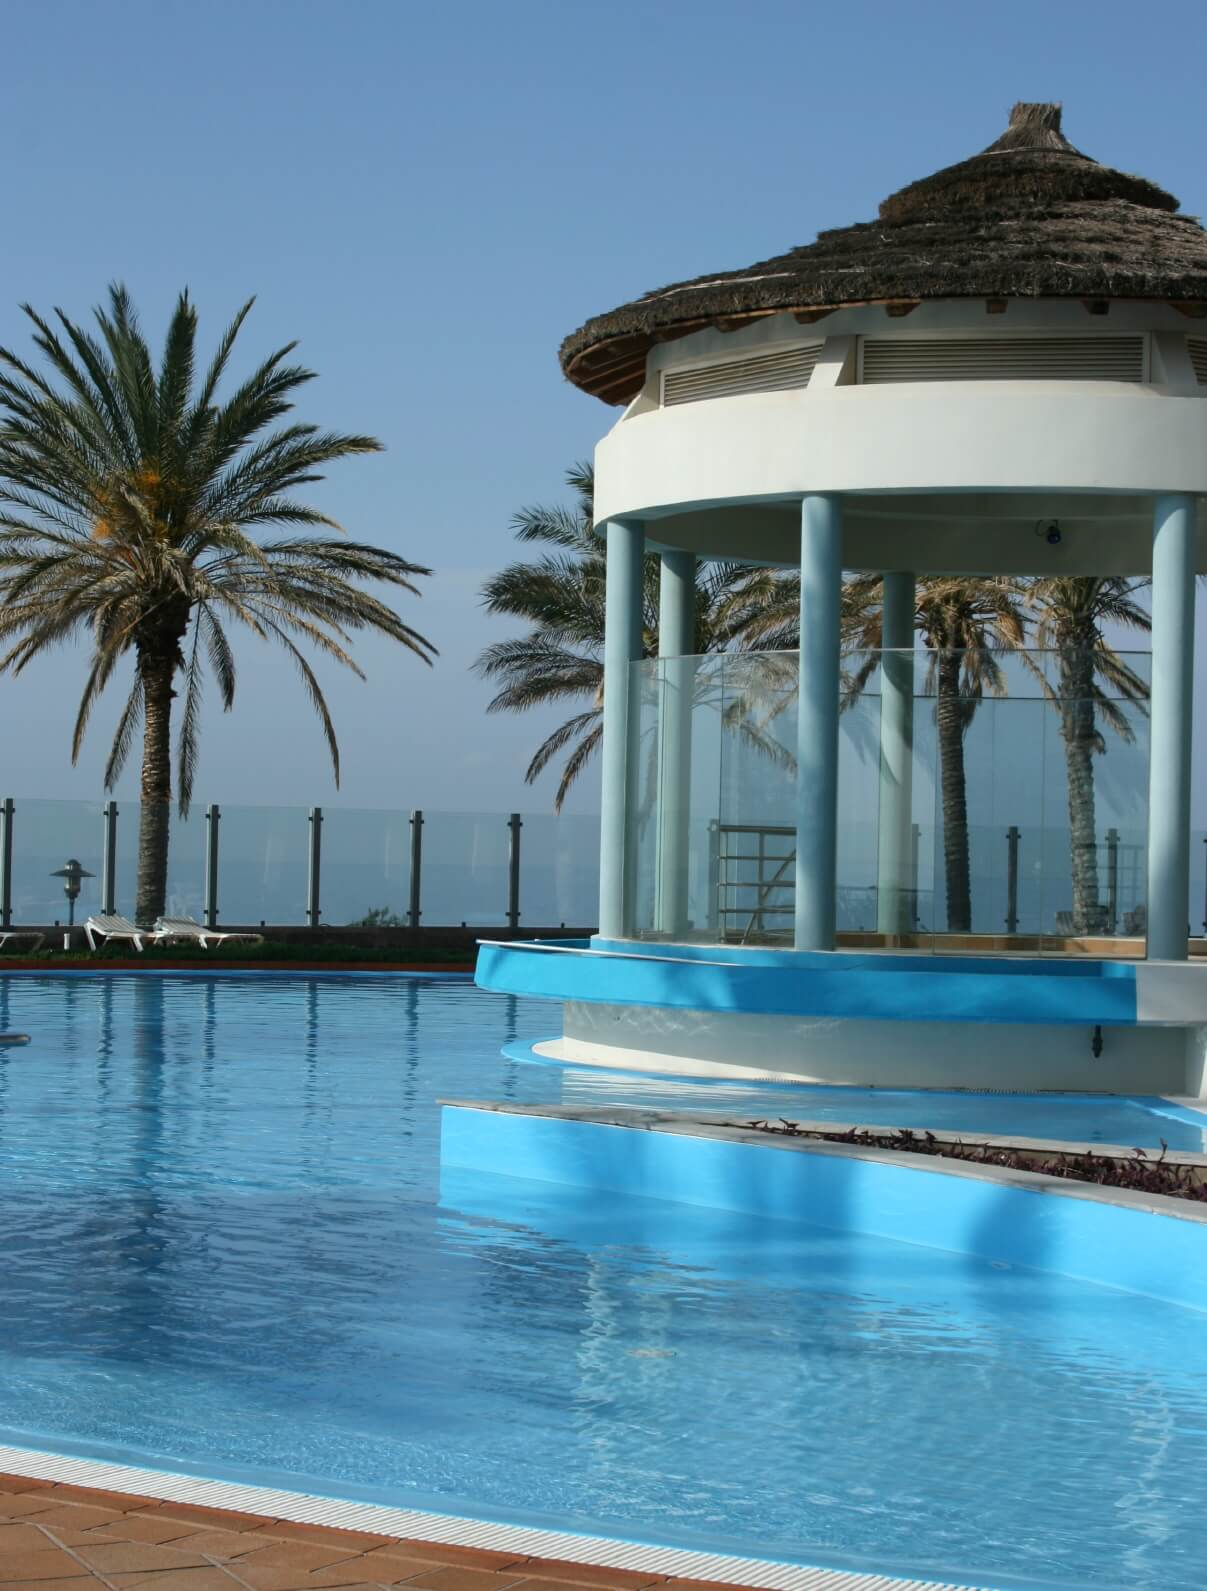 This poolside gazebo has a great view of the pool and the surrounding area all while being protected by a wonderful glass wall. This will keep people who don't want to be in the pool dry.